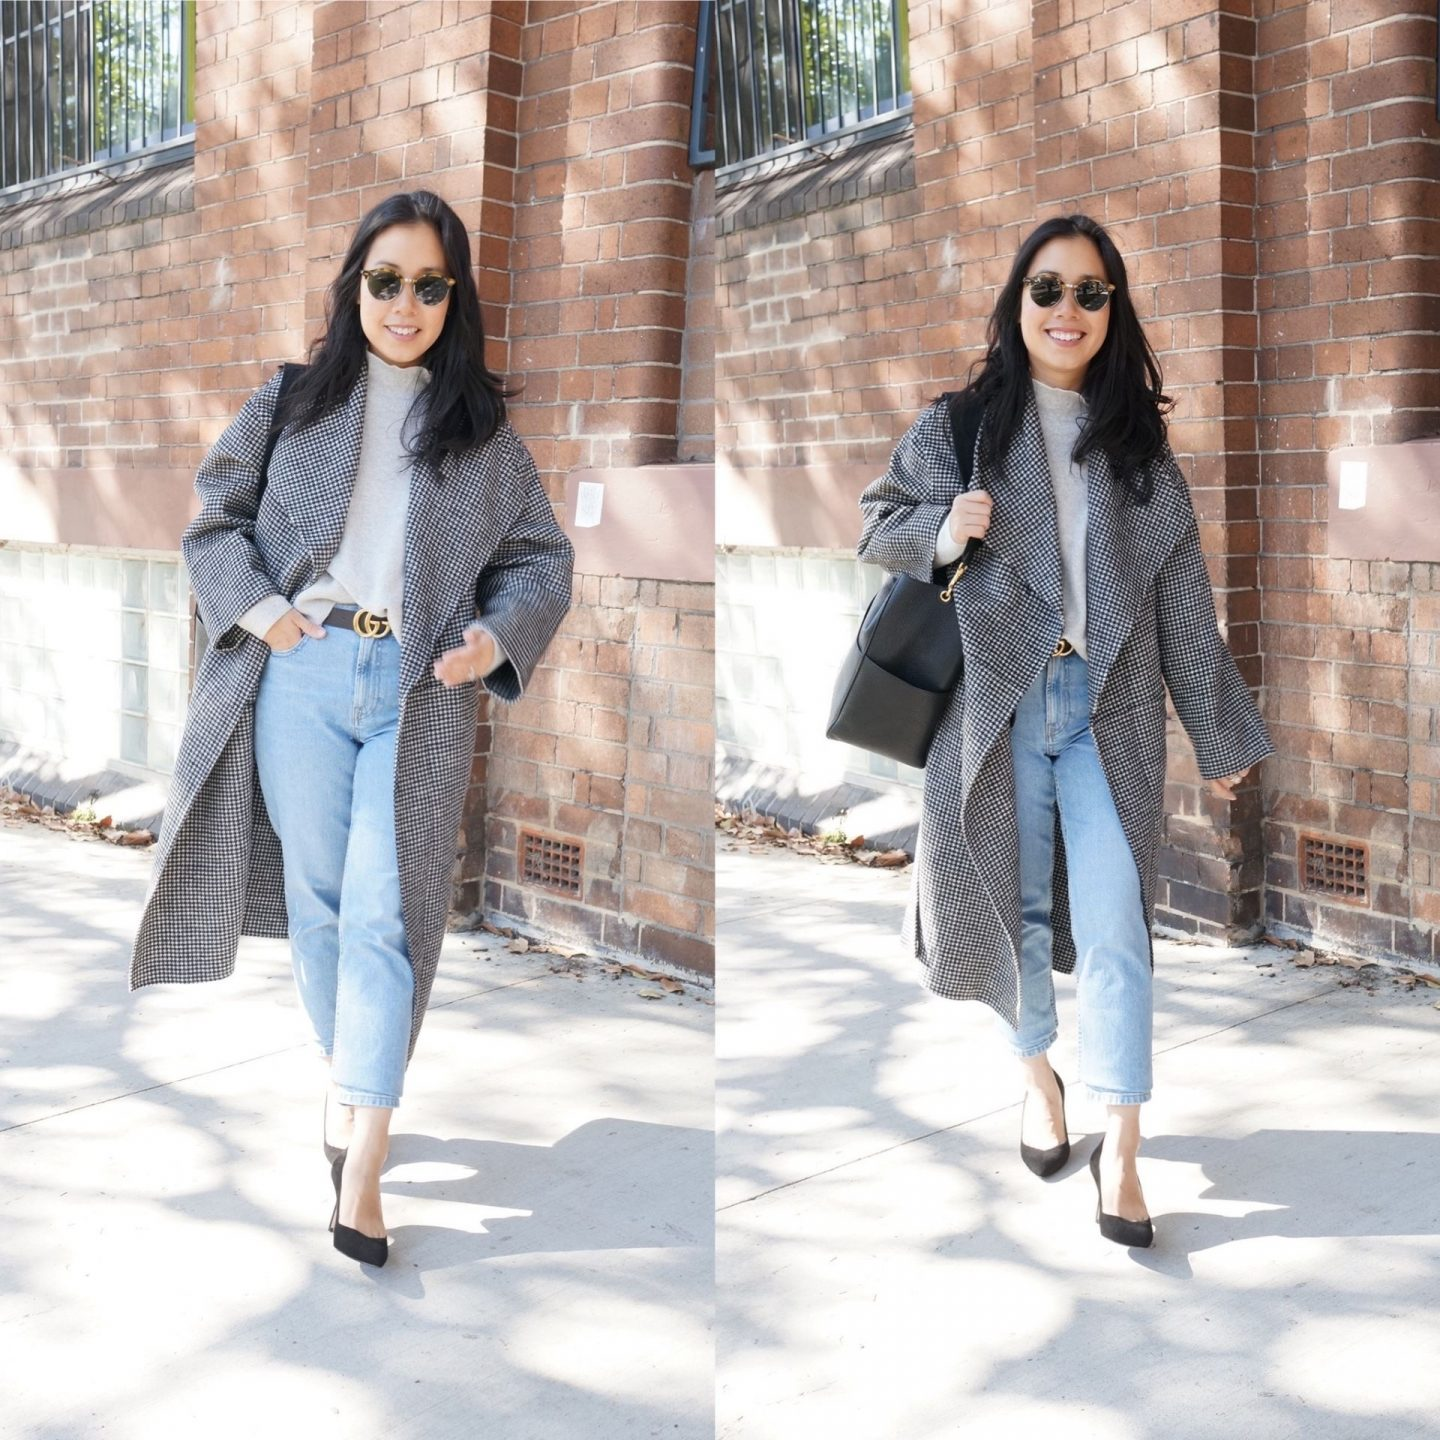 blog post talking through wardrobe items to keep featuring woman wearing toteme annecy coat